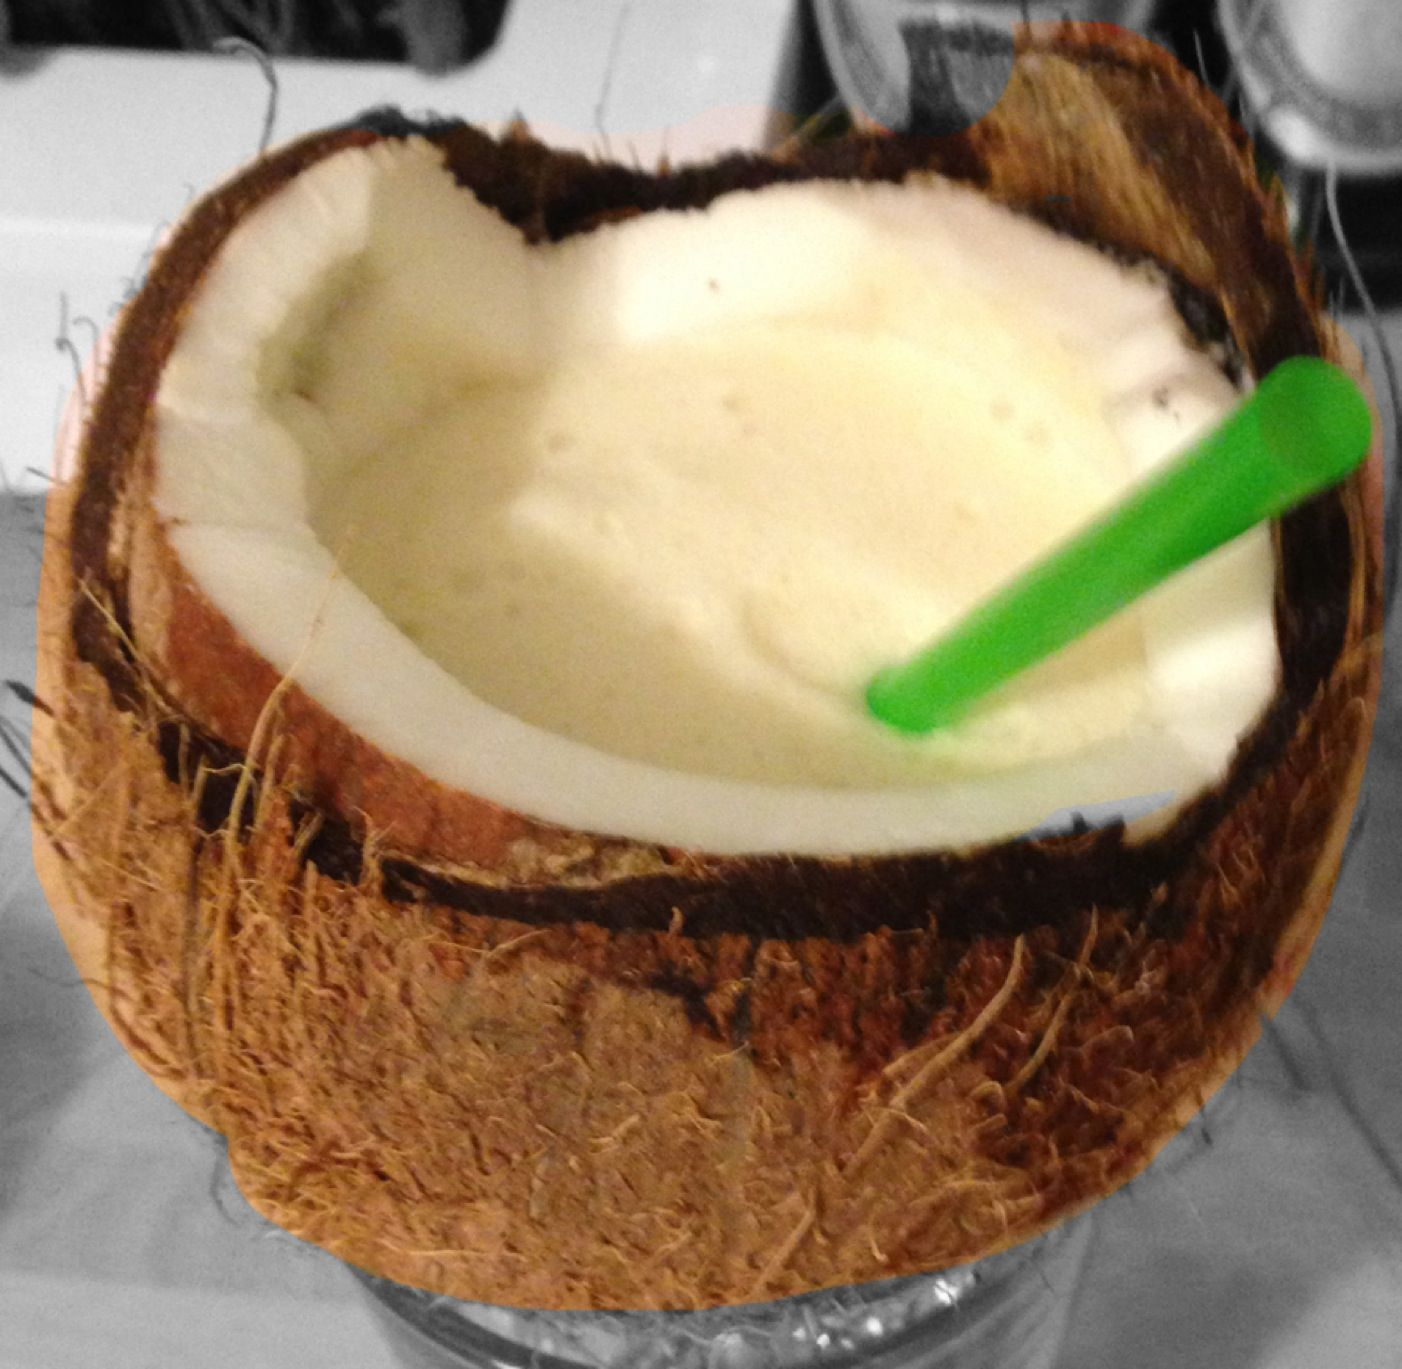 Cocktails in coconuts.